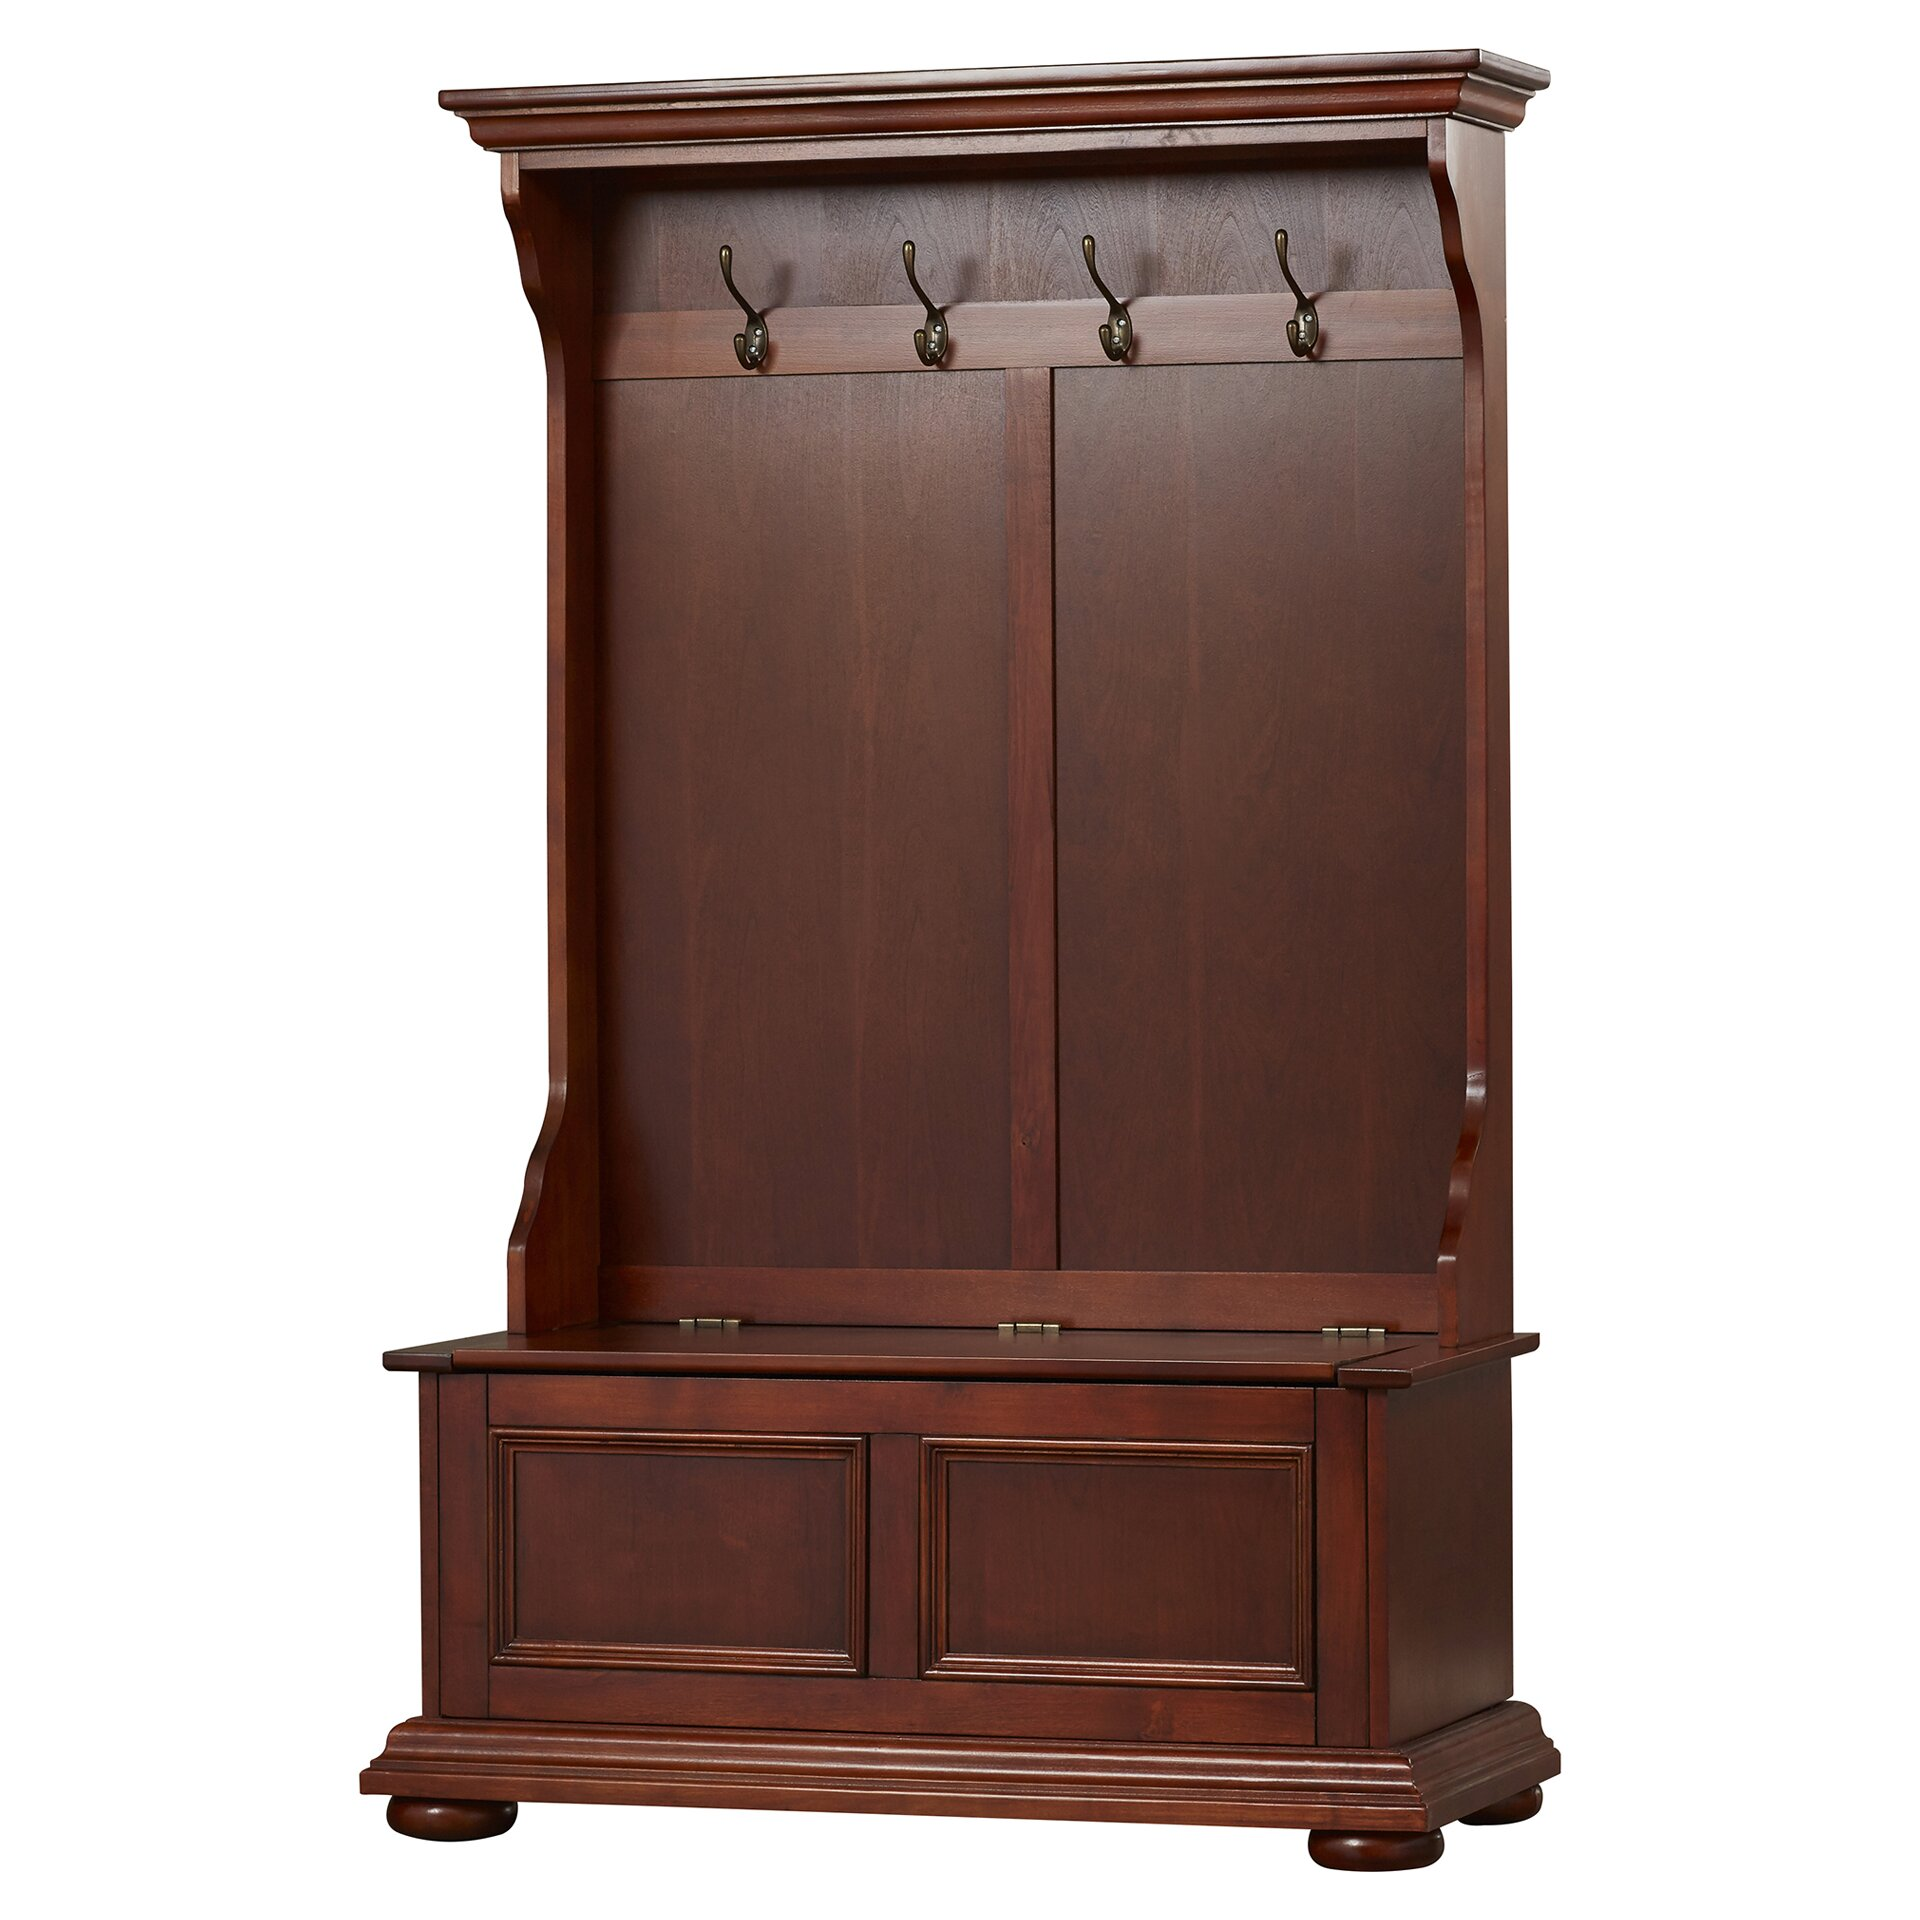 Darby Home Co Chilton Entryway Hall Tree & Reviews | Wayfair